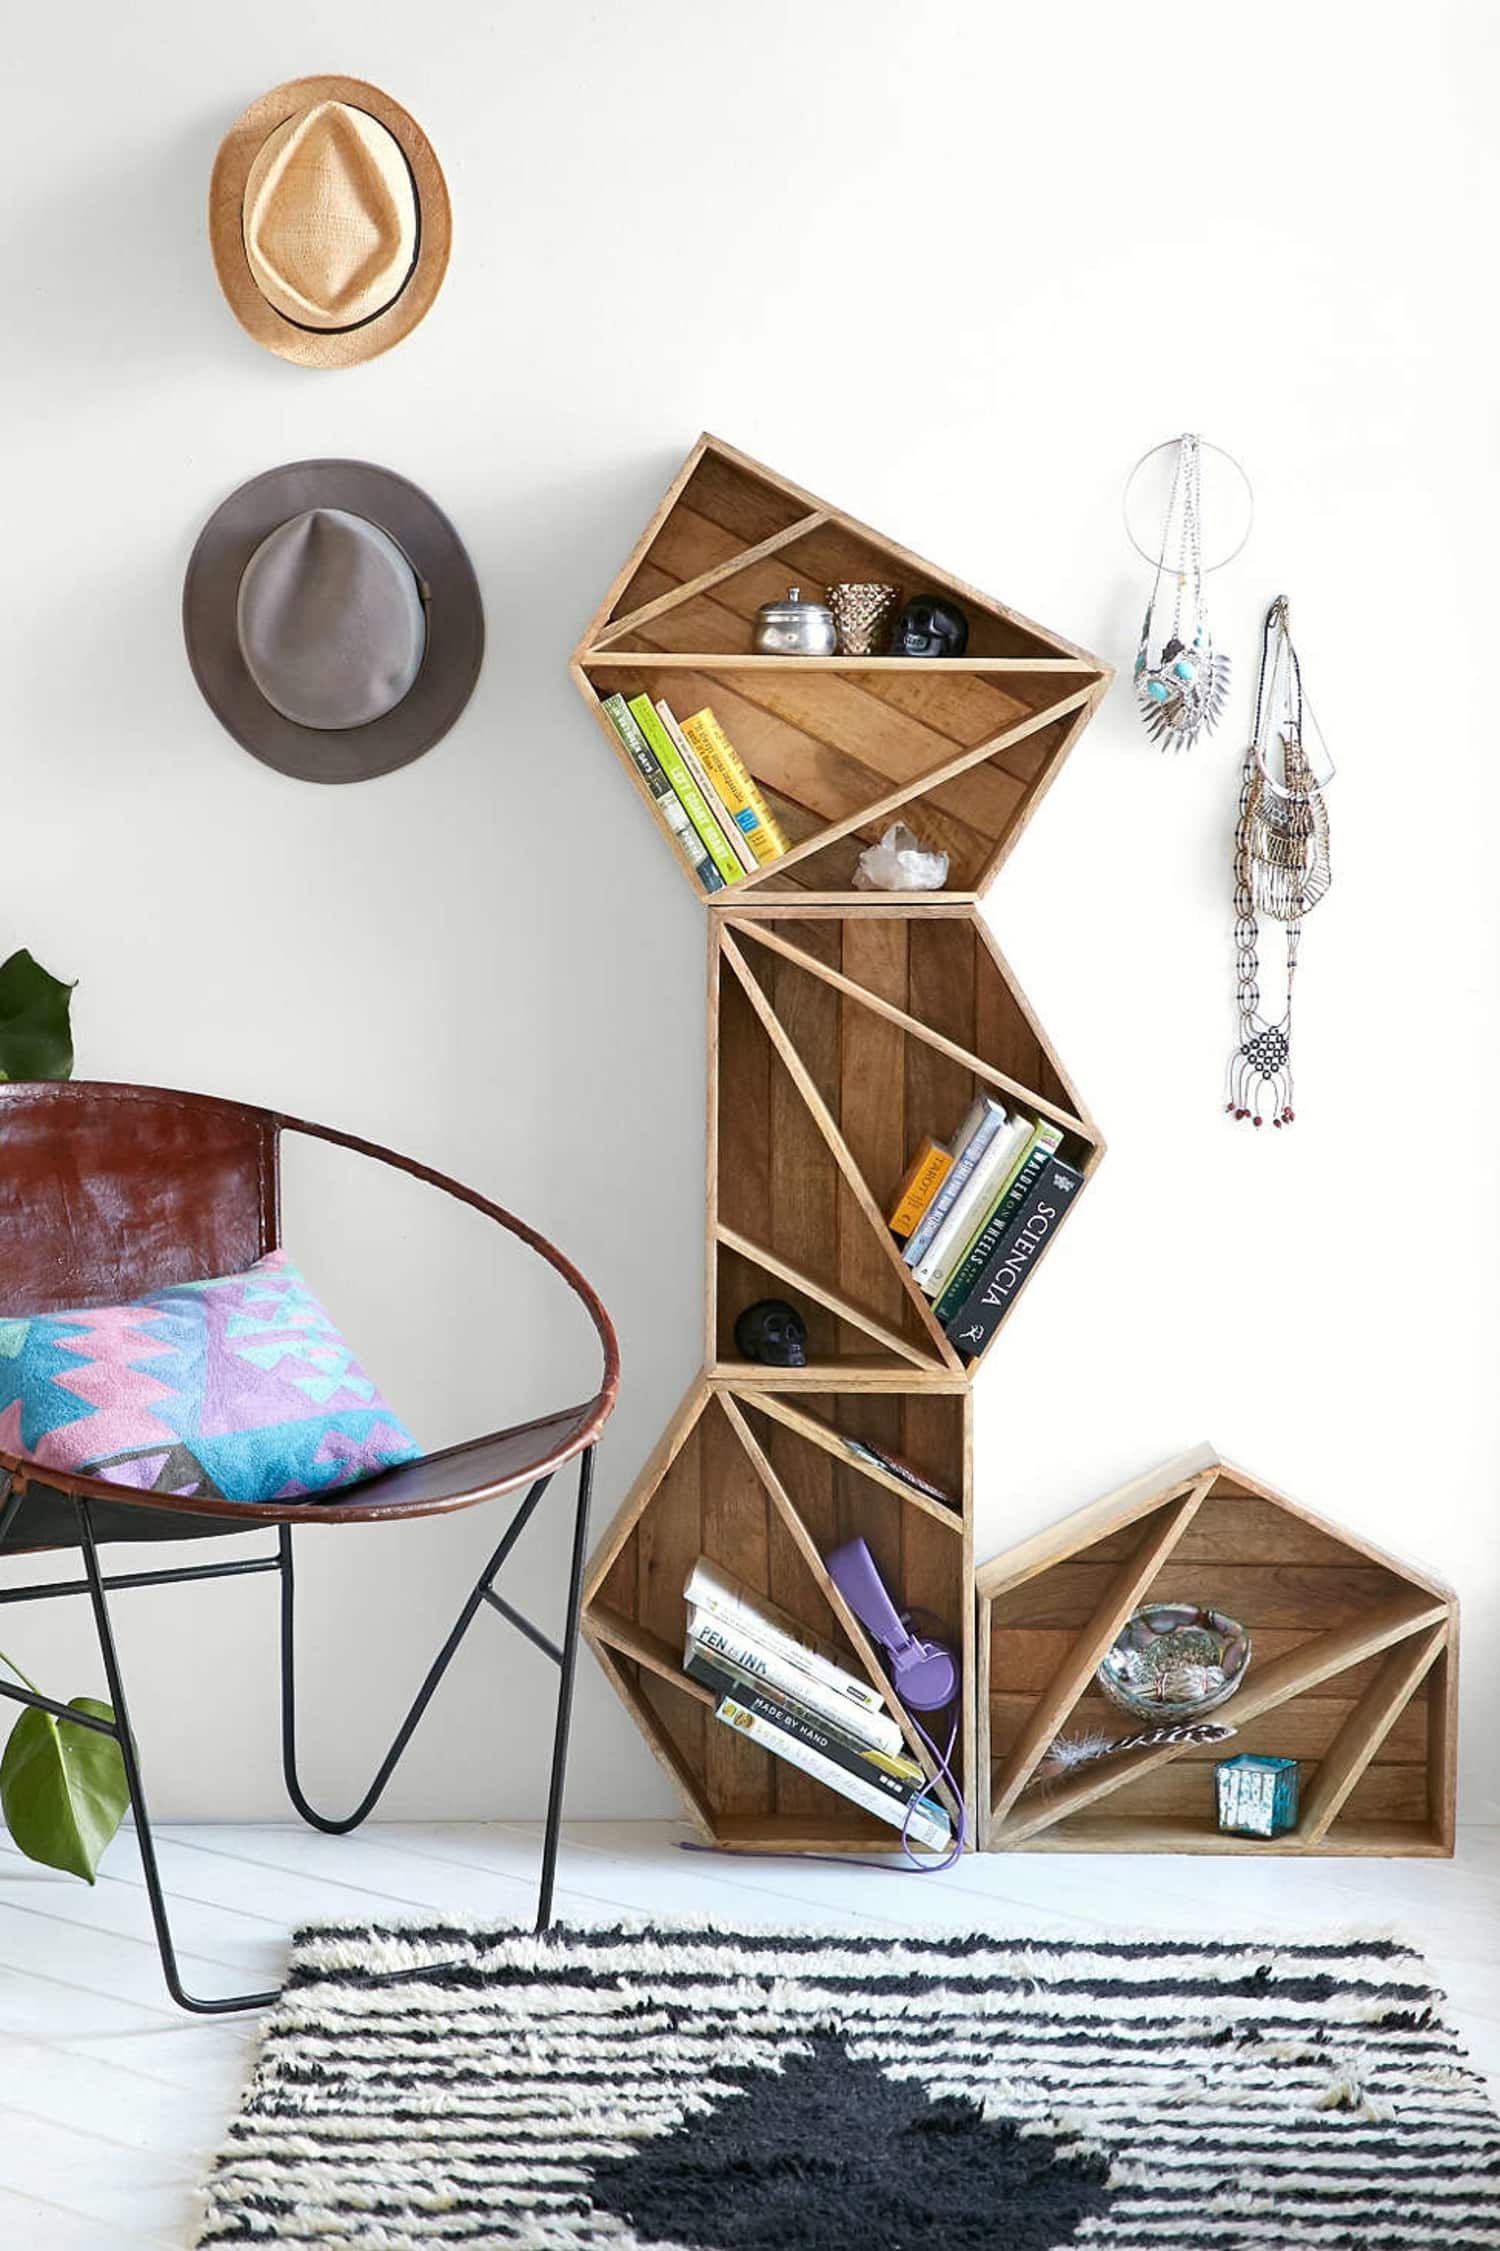 Buy or DIY: The Coolest Geometric Shelves Under $100